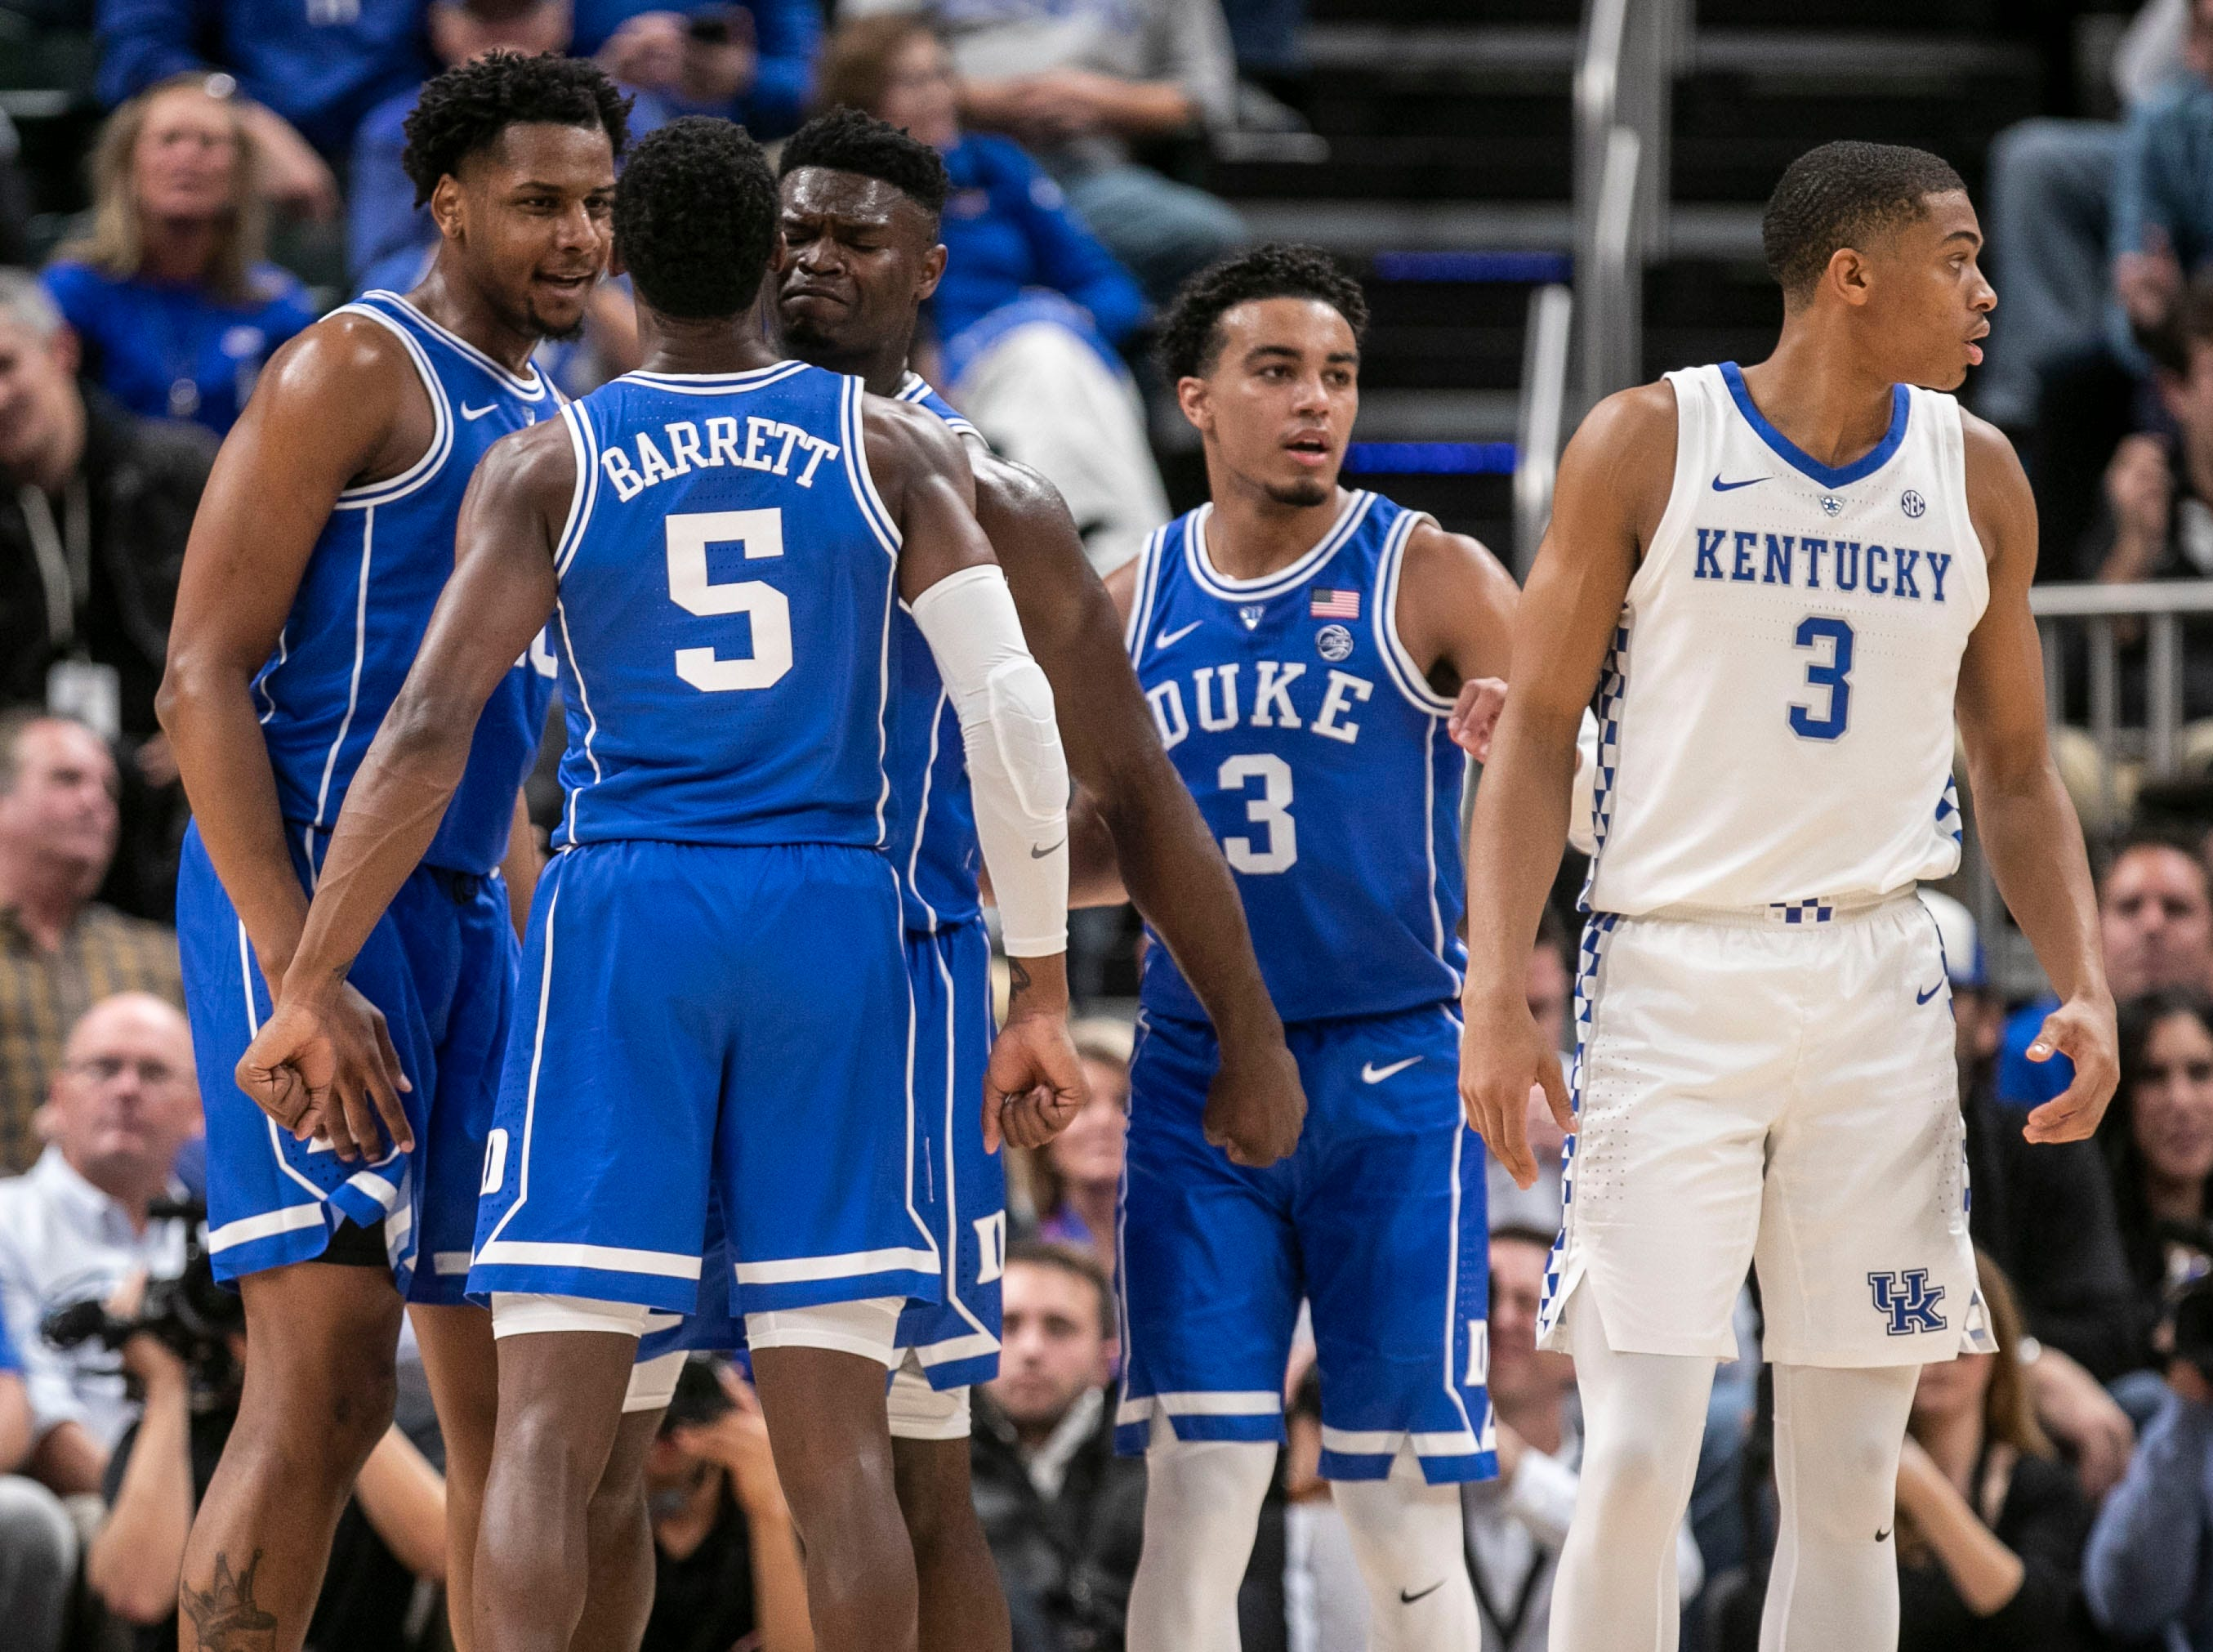 Duke's Zion Williamson had a look of determination as he celebrated a play with teammate RJ Barrett in the first half as the Blue Devils cruised past Kentucky 118-84 in the Champions Classic Nov. 6, 2018